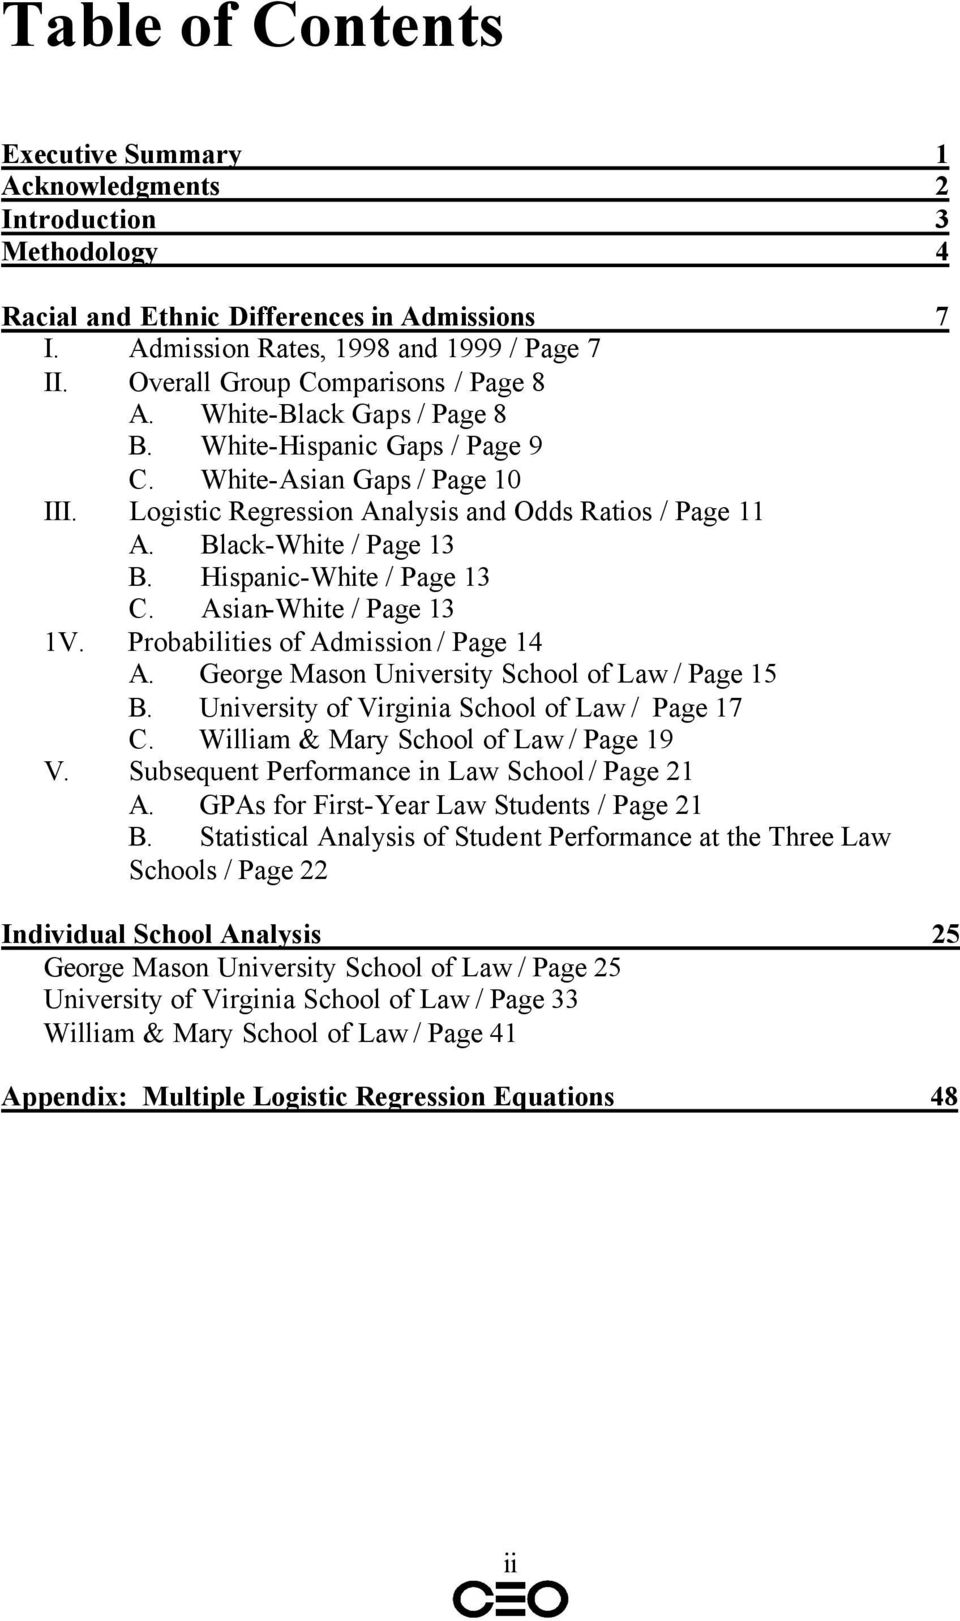 Black-White / Page 13 B. Hispanic-White / Page 13 C. Asian-White / Page 13 1V. Probabilities of Admission / Page 14 A. George Mason University School of Law / Page 15 B.